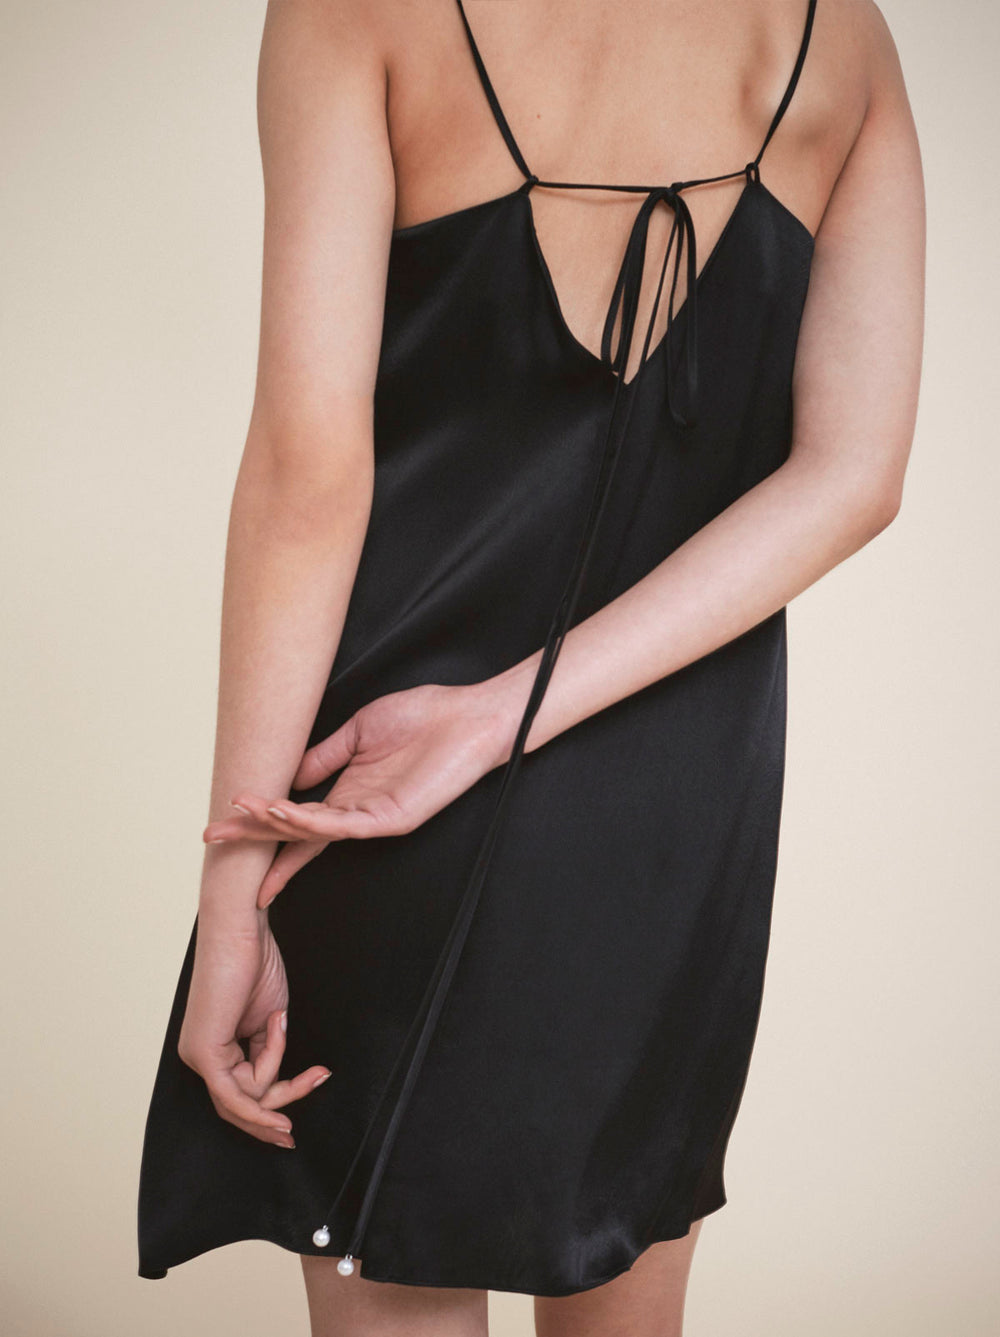 Scarlett Black Slip Dress